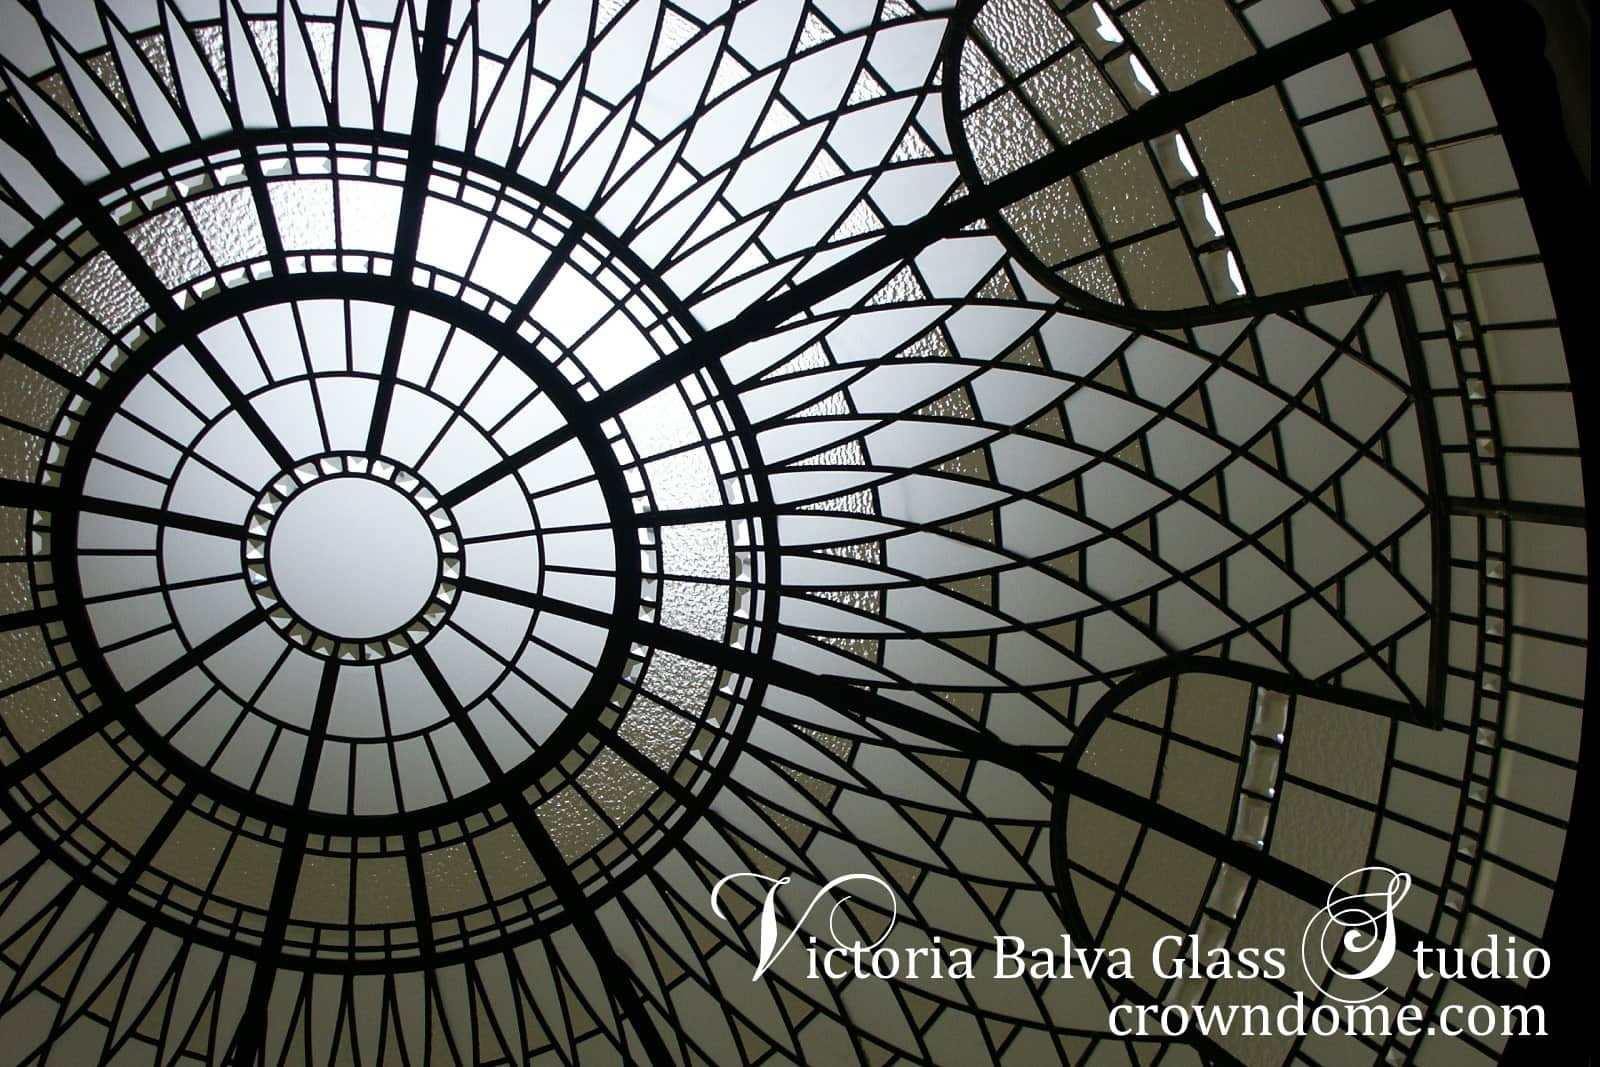 Large leaded glass artistic dome ceiling skylight for a luxury home in Great Neck, Long Island, New York w clear textured glasses, crystal glass elements, decorative glass ceiling lay light design by glass artist Victoria Balva